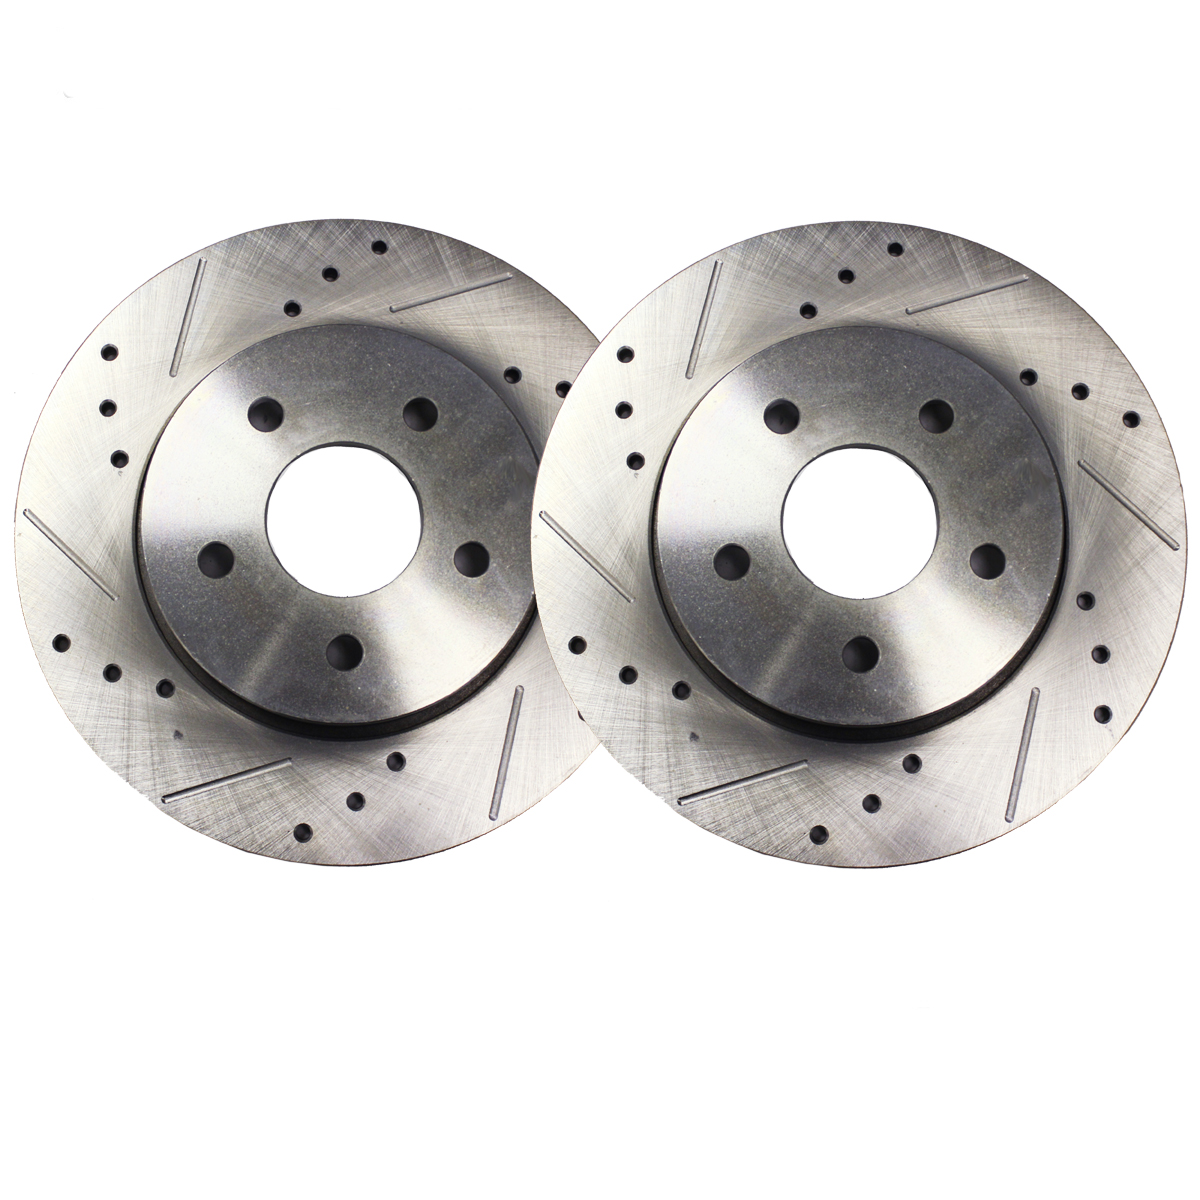 Front Drilled and Slotted Brake Rotors #S-54142-Ford/Lincoln/Mazda/Mercury